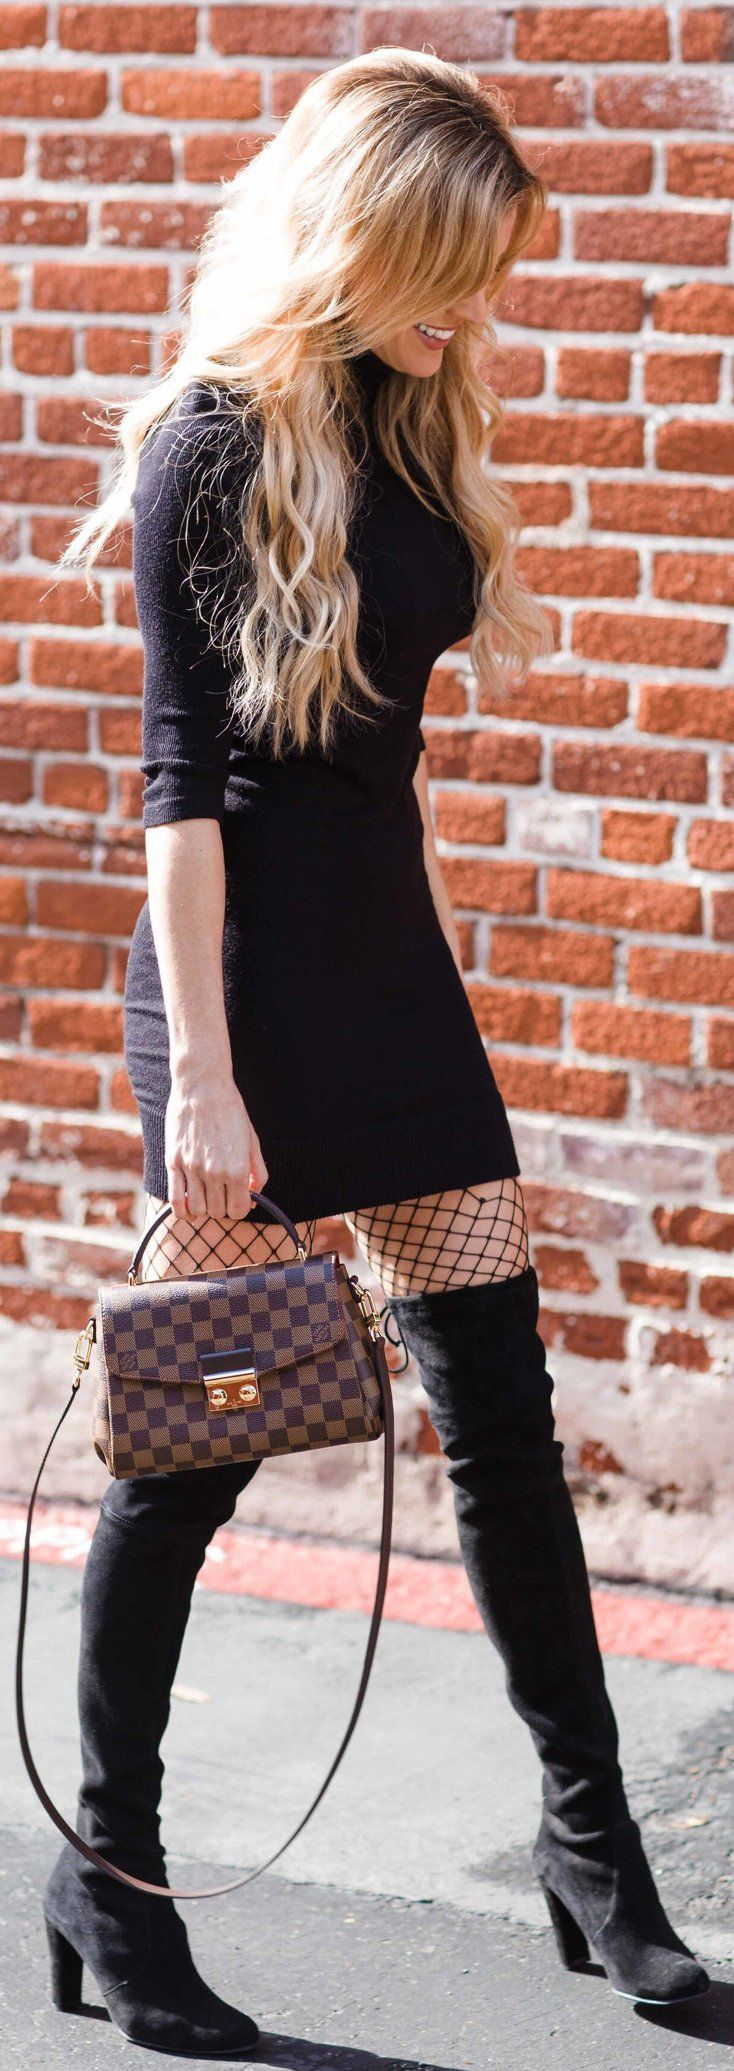 #winter #fashion /  Black Dress / Checked Tote Bag / Black Tights / Black OTK Boots